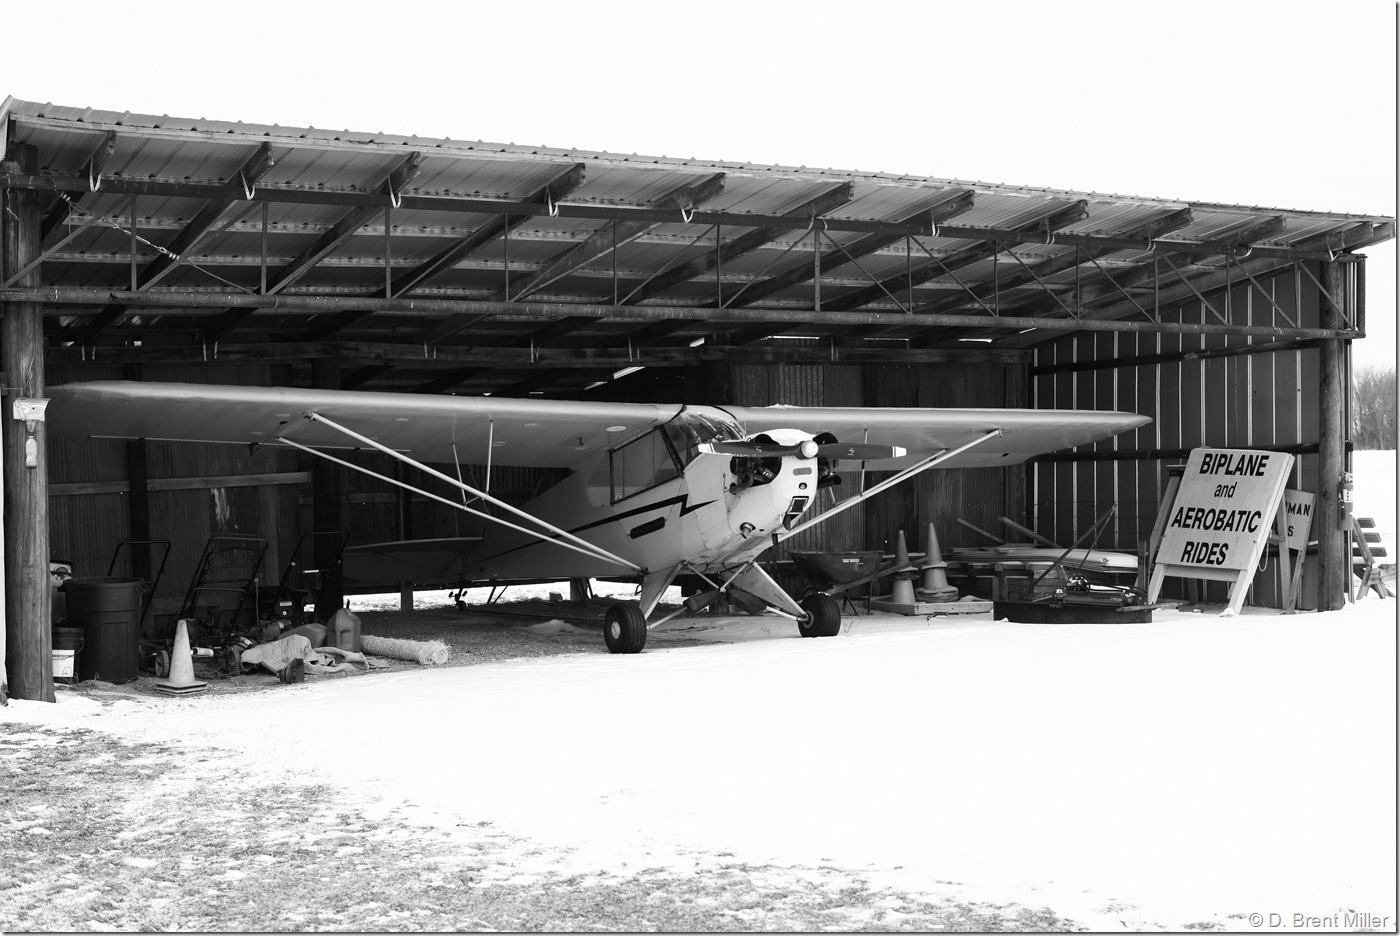 Piper Cub sheltered from the snow